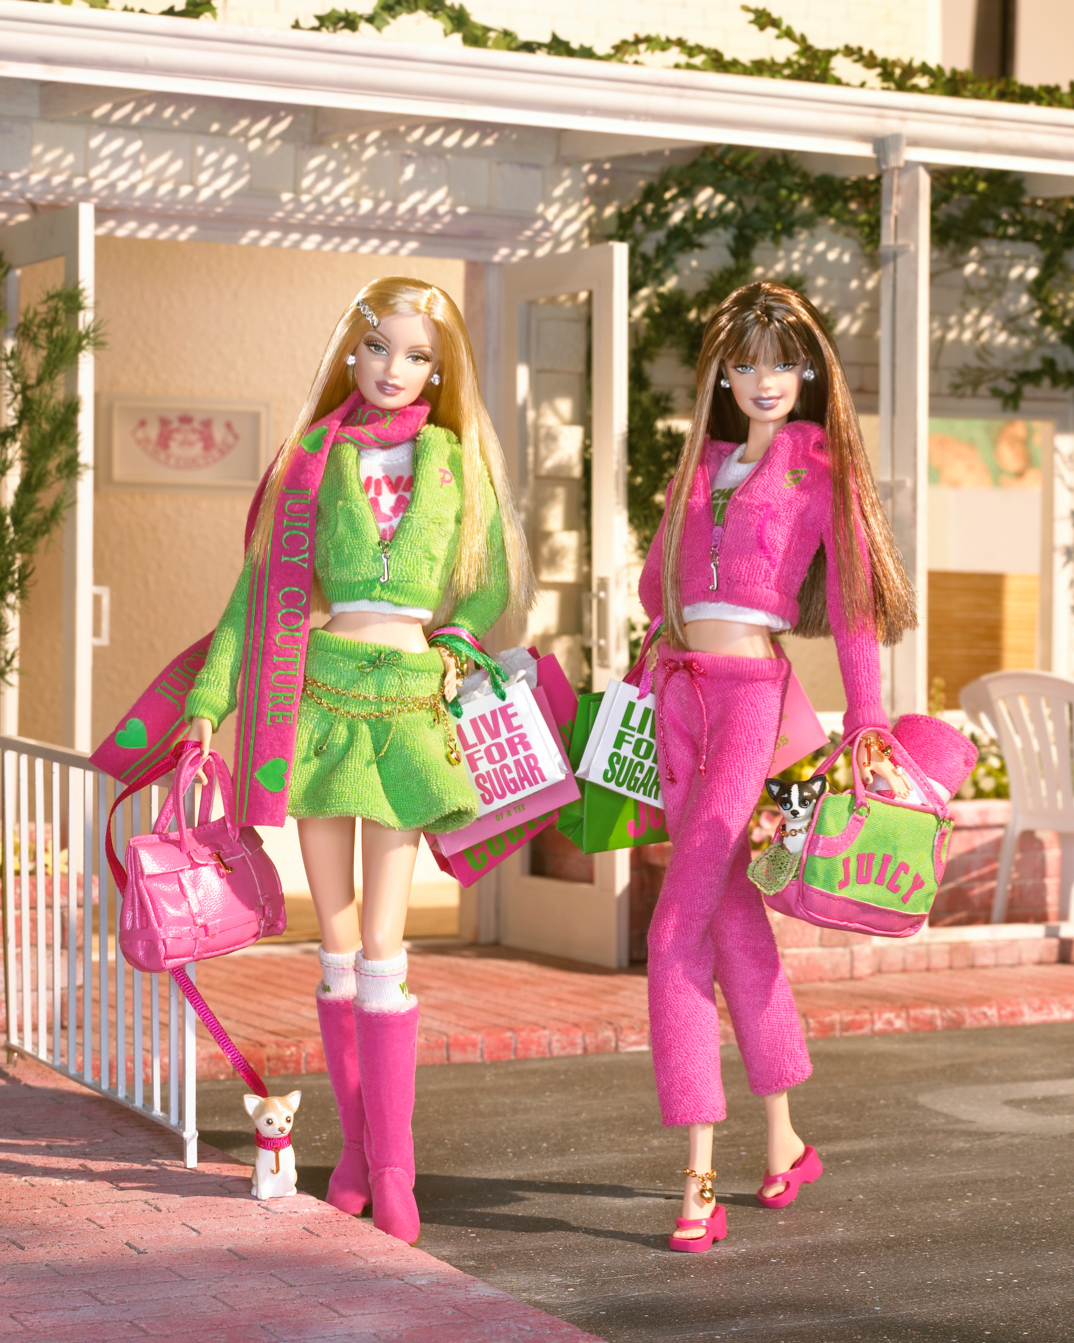 The Juicy Couture Barbie Doll, released in 2004.